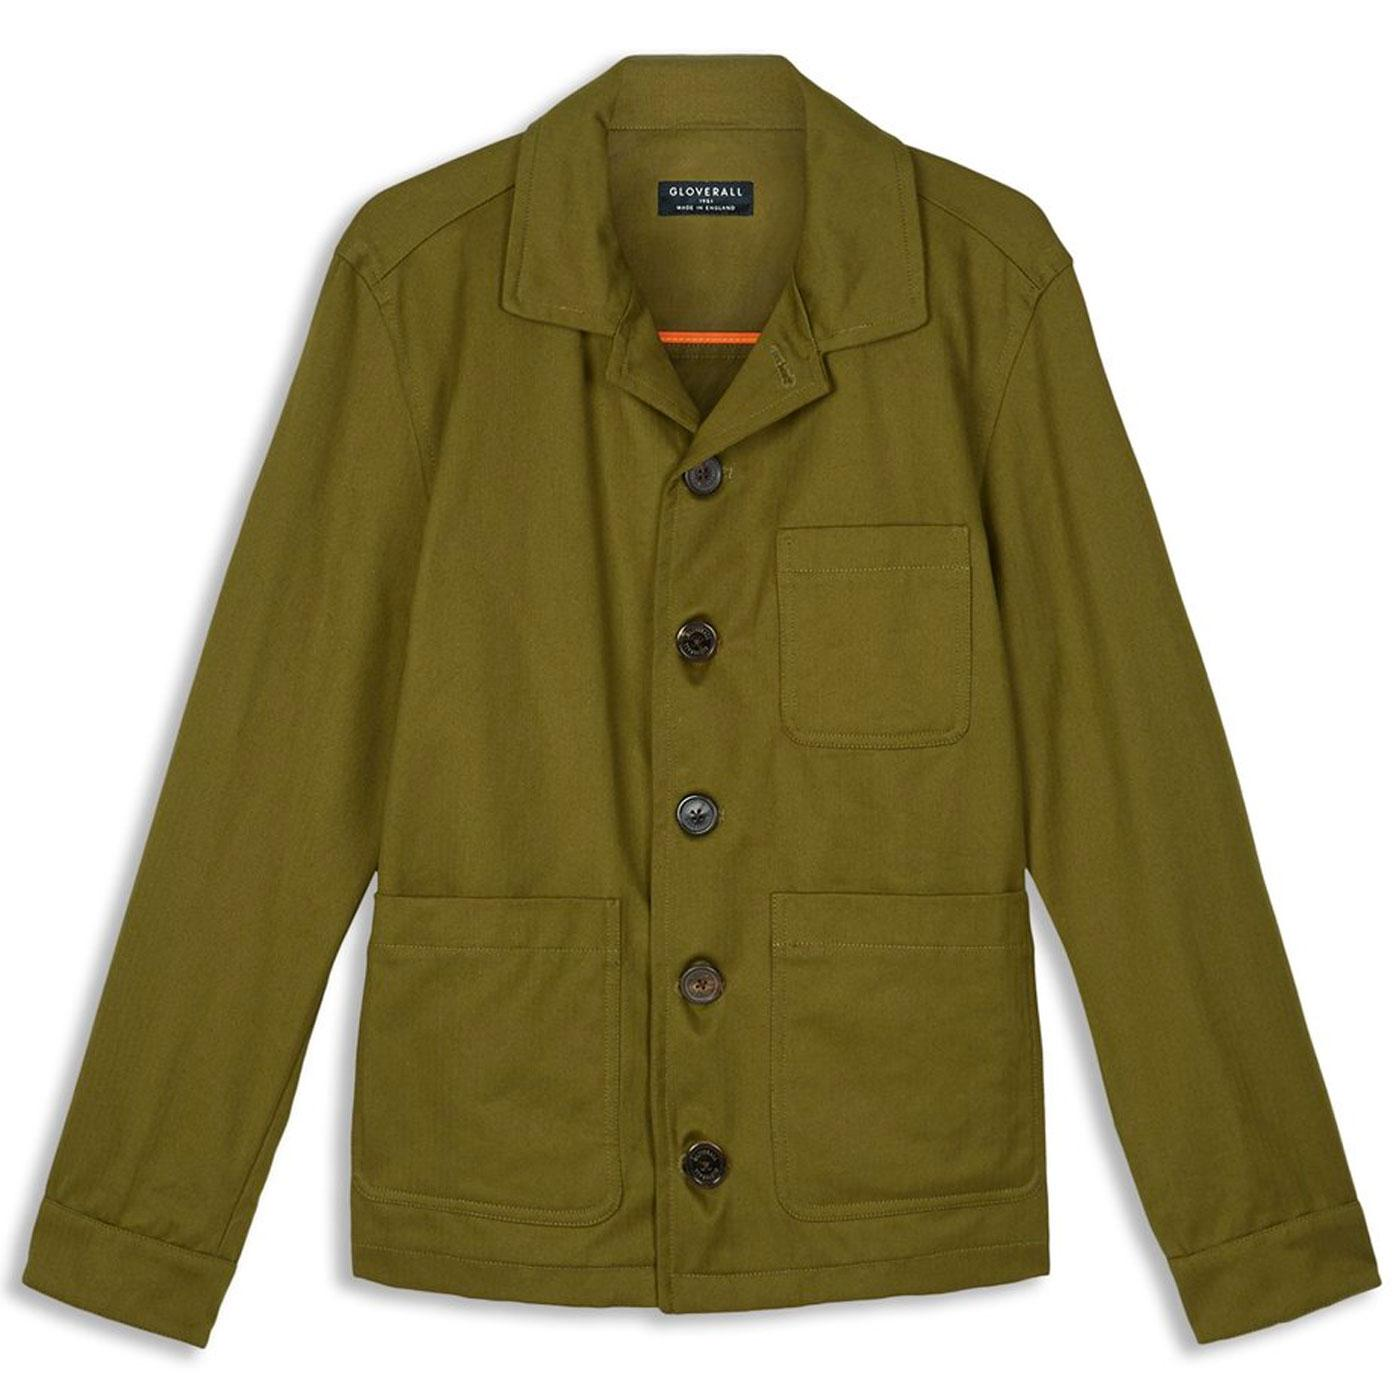 Harry GLOVERALL Retro Made in England Work Jacket